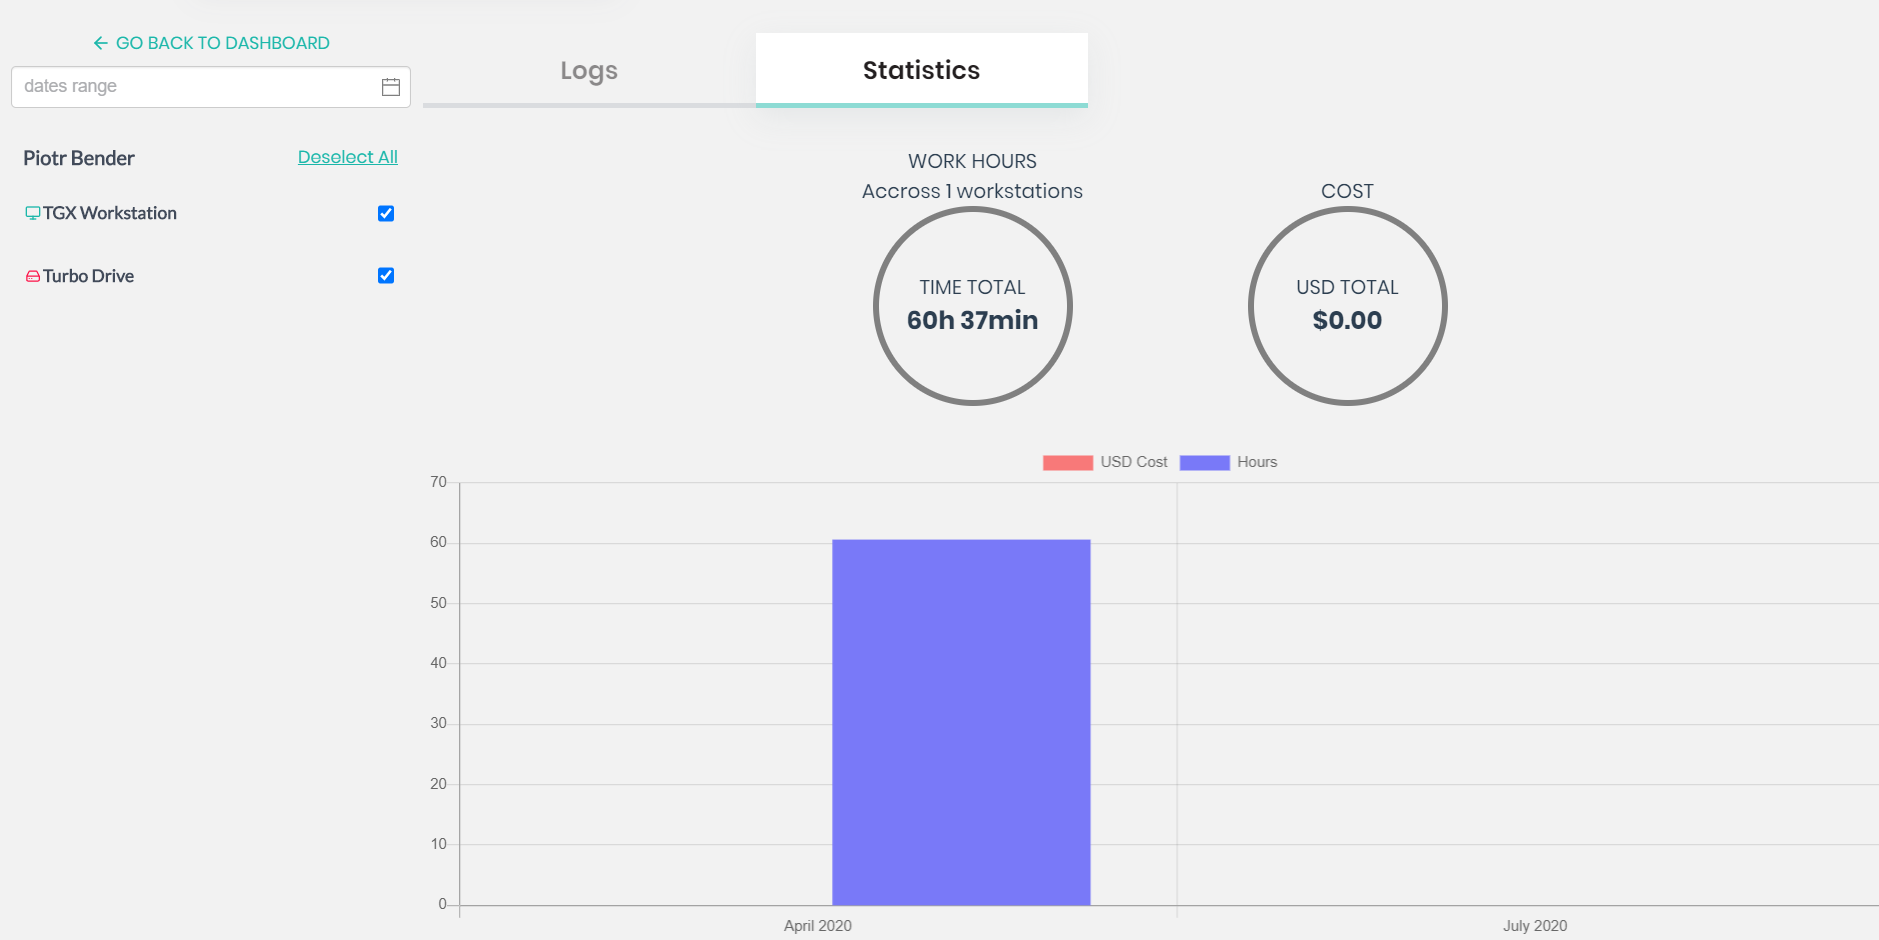 Get instant access to usage statistics